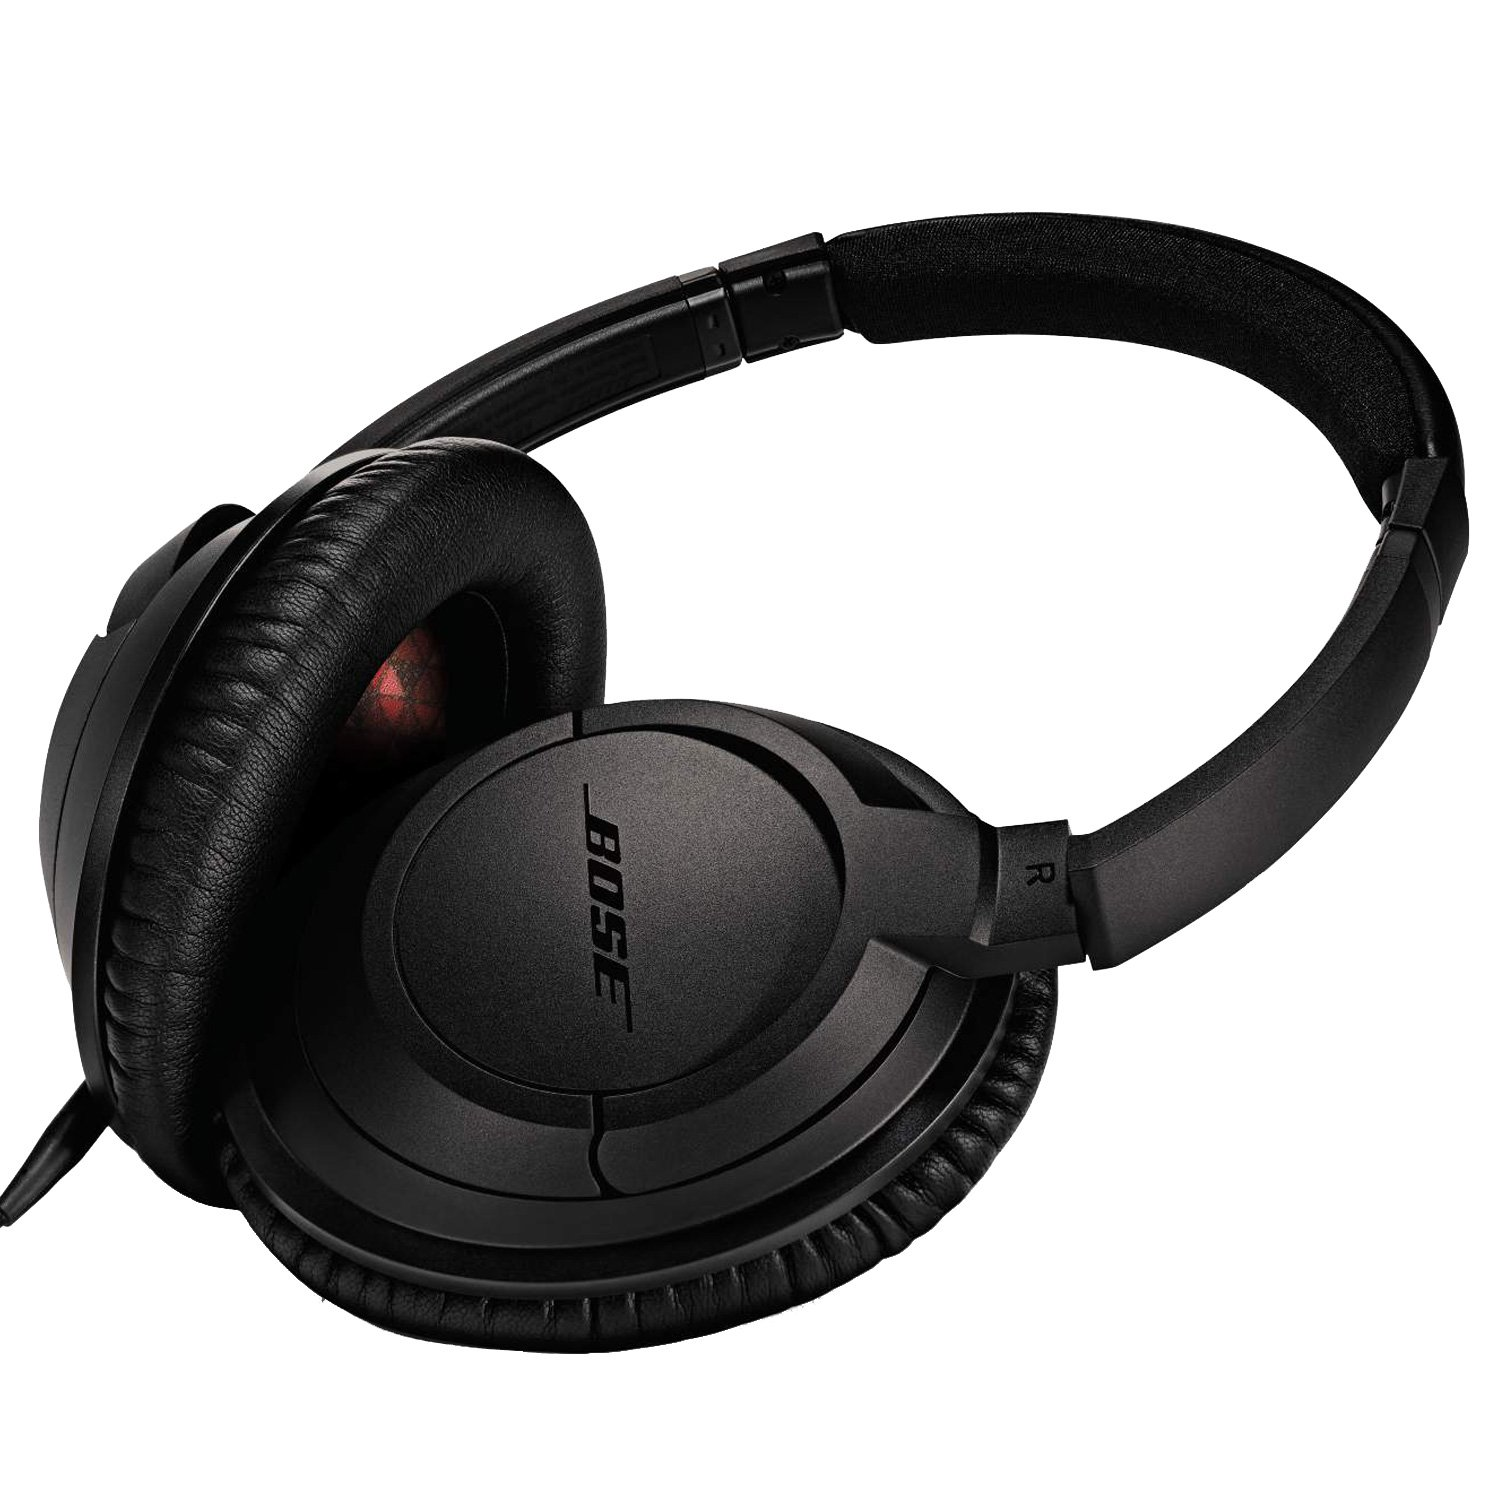 Bose  SoundTrue Around-Ear Headphones - Black   B00IUICOR6